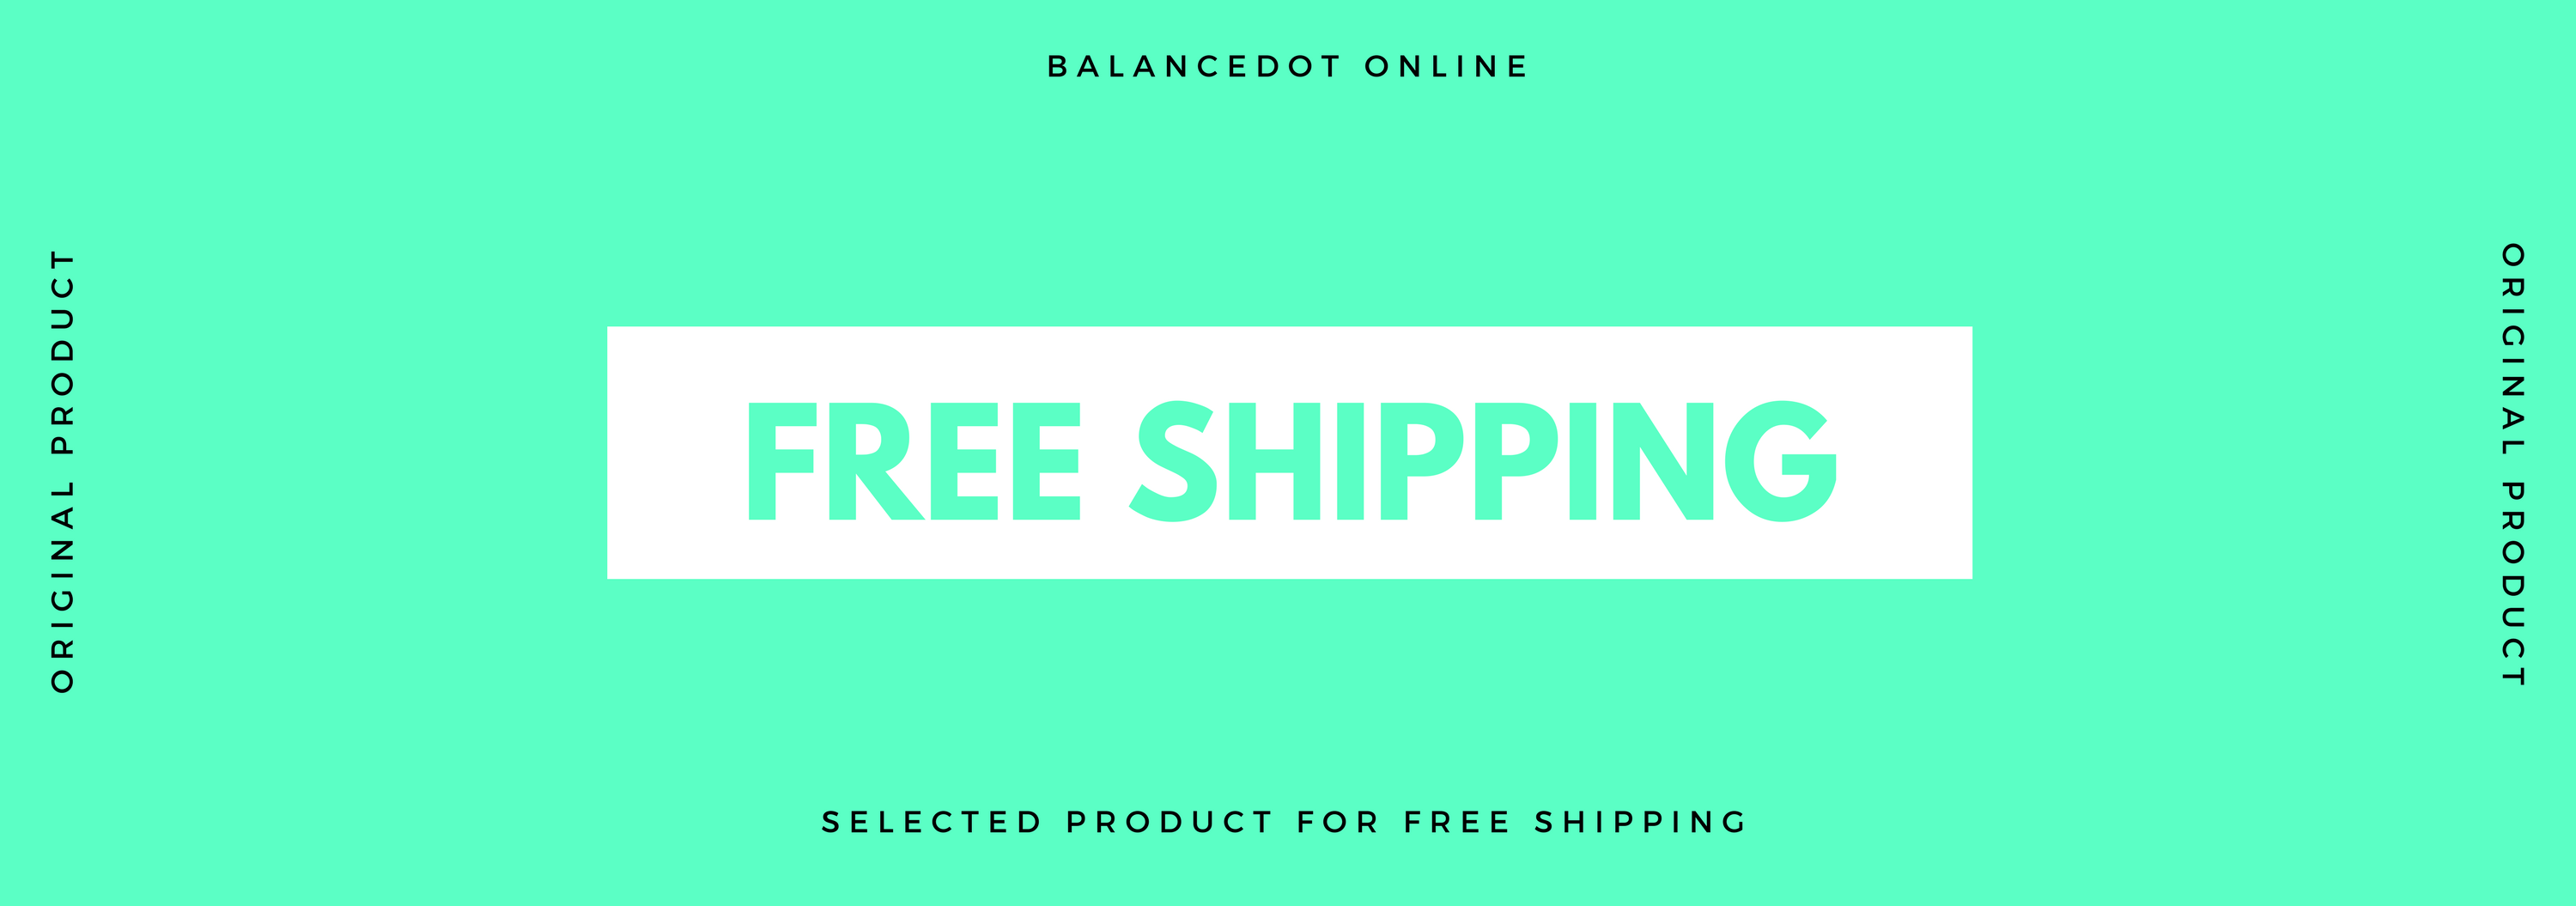 FREE SHIPPING_2.png